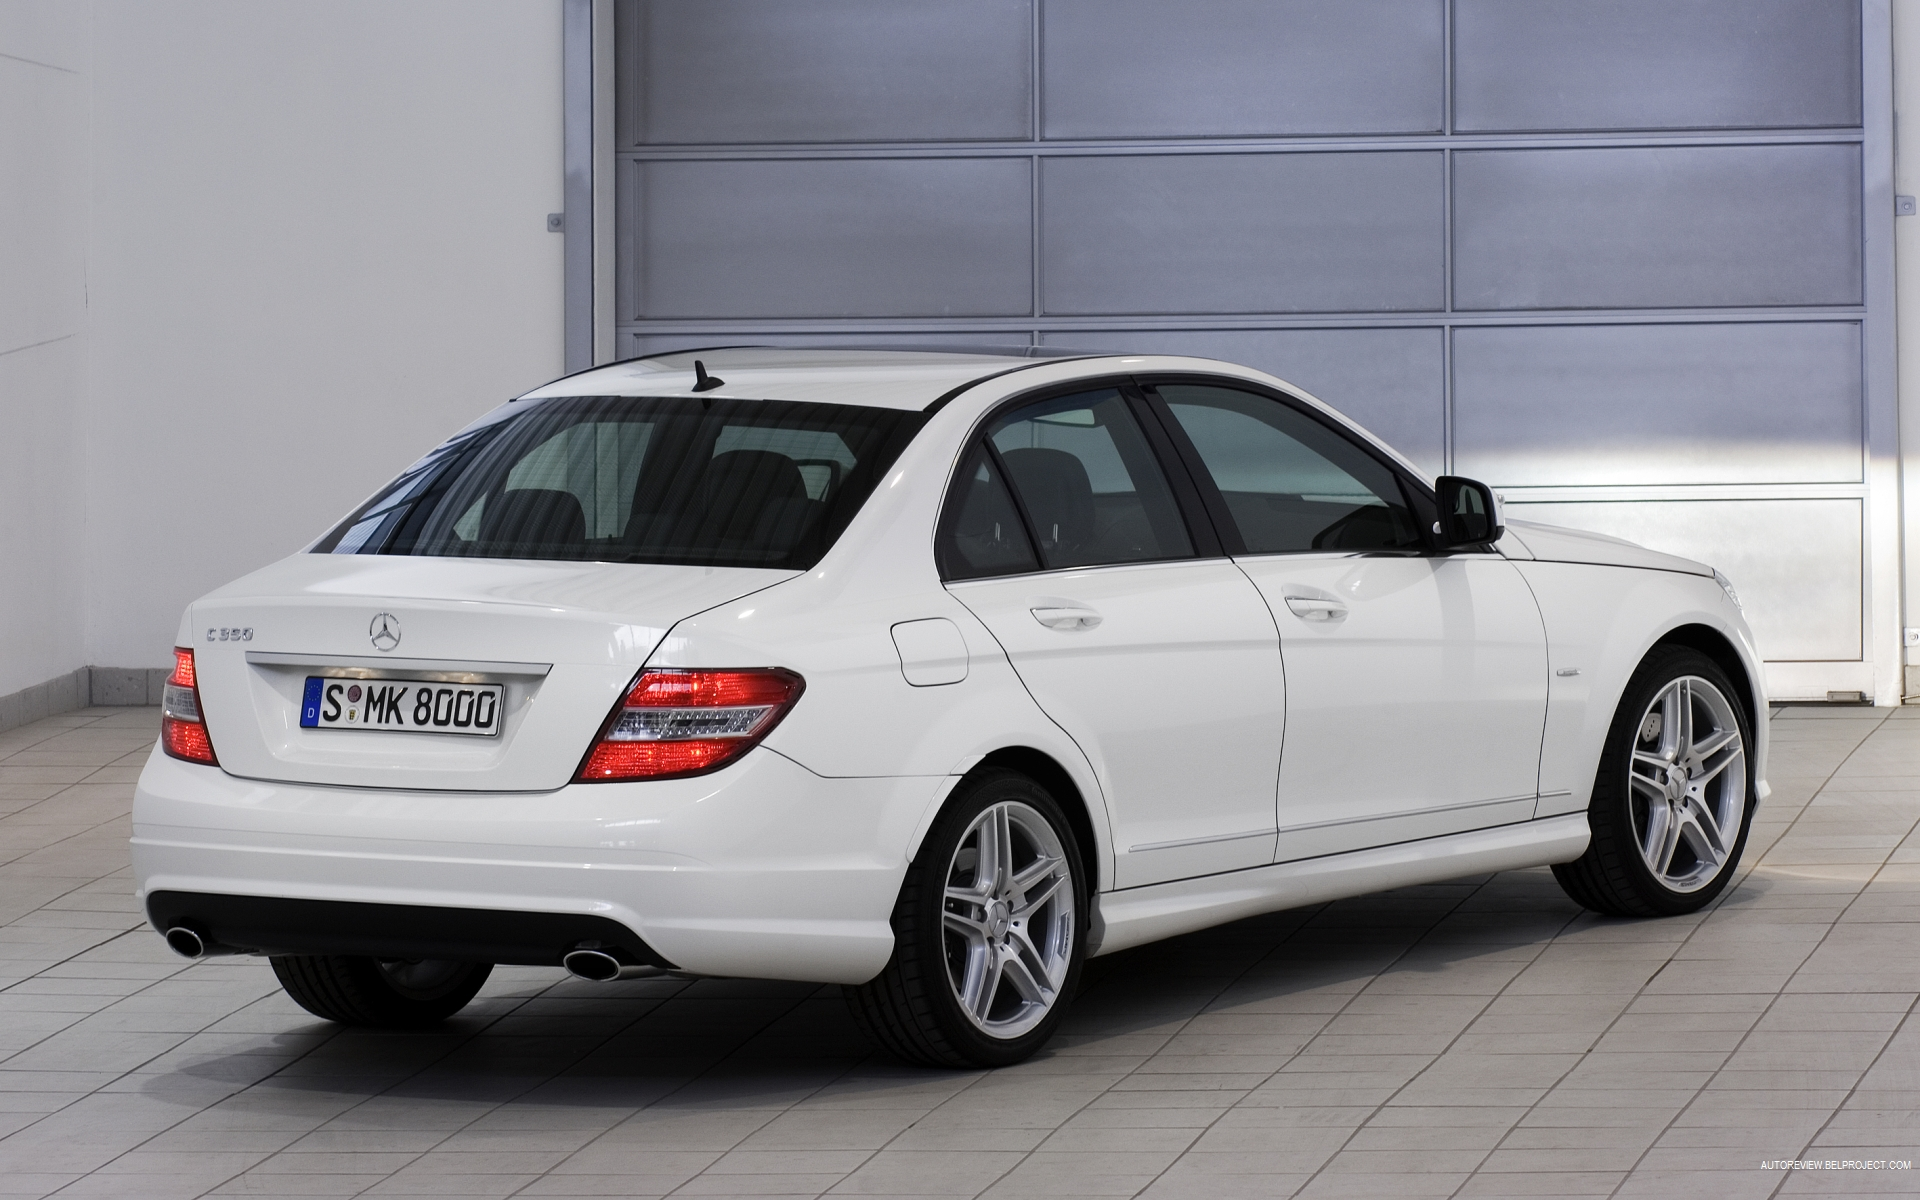 Mercedes Benz C180 Kompressor Picture 11 Reviews News Specs Buy Car